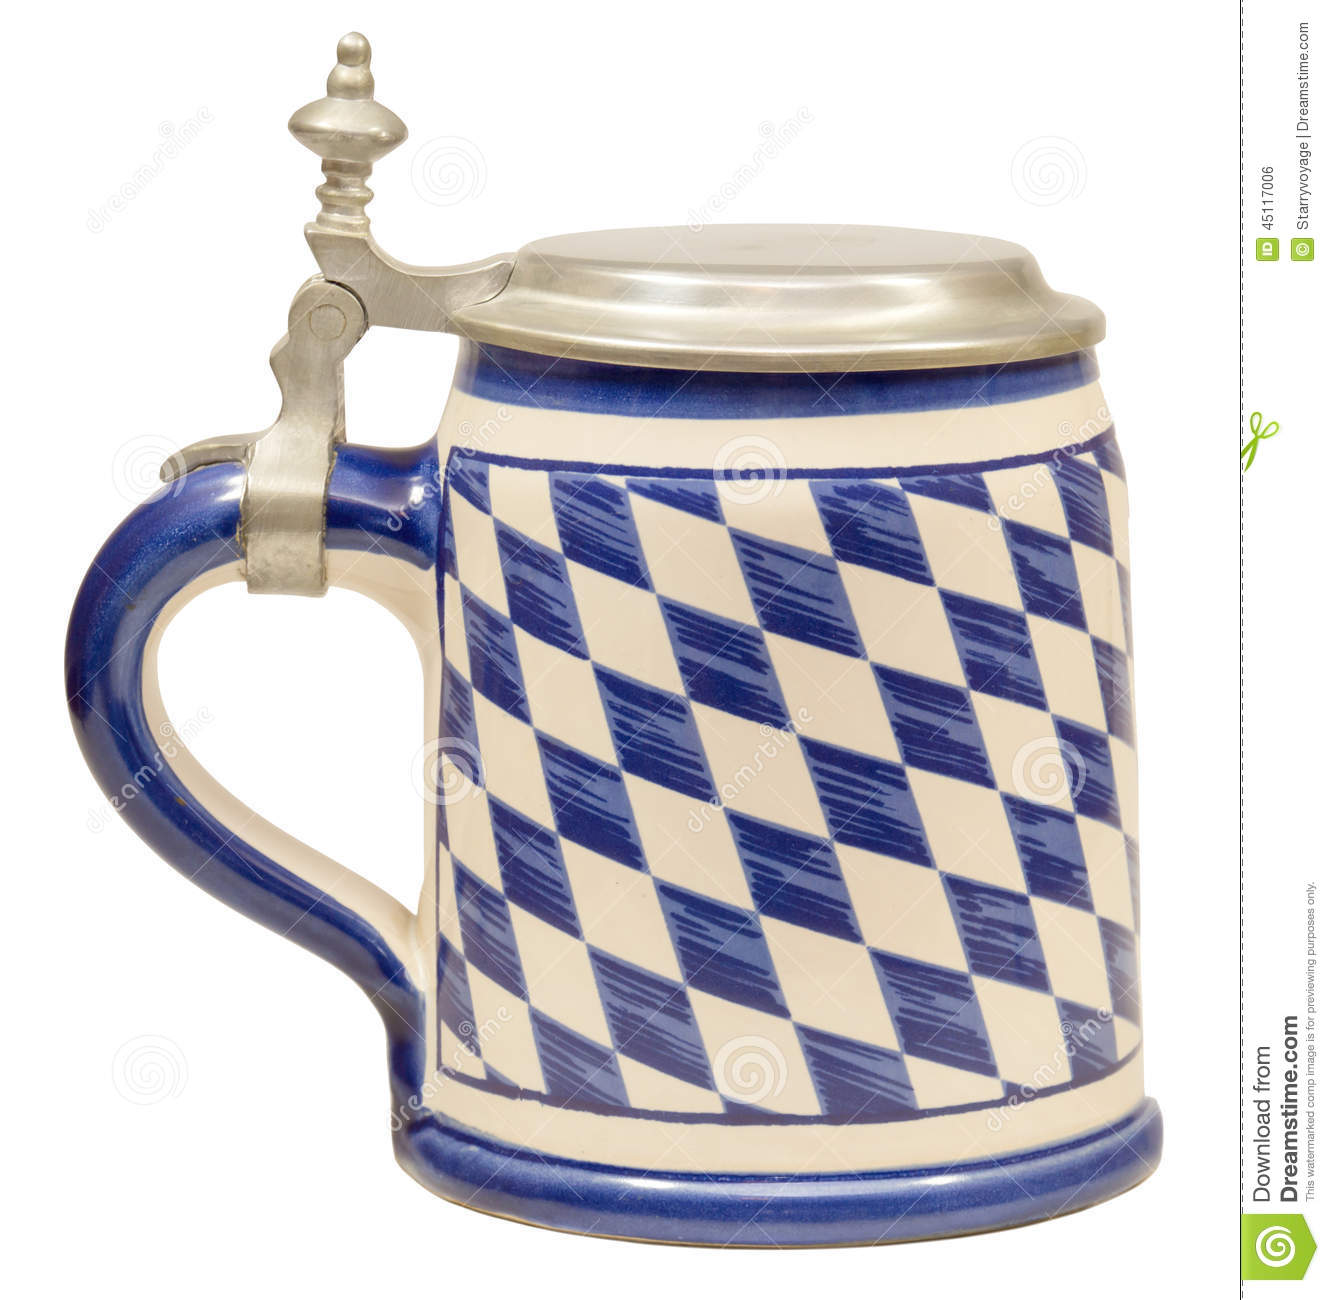 An Isolated Bavarian Beer Stein Decorated In The Bavarian Flag Colors